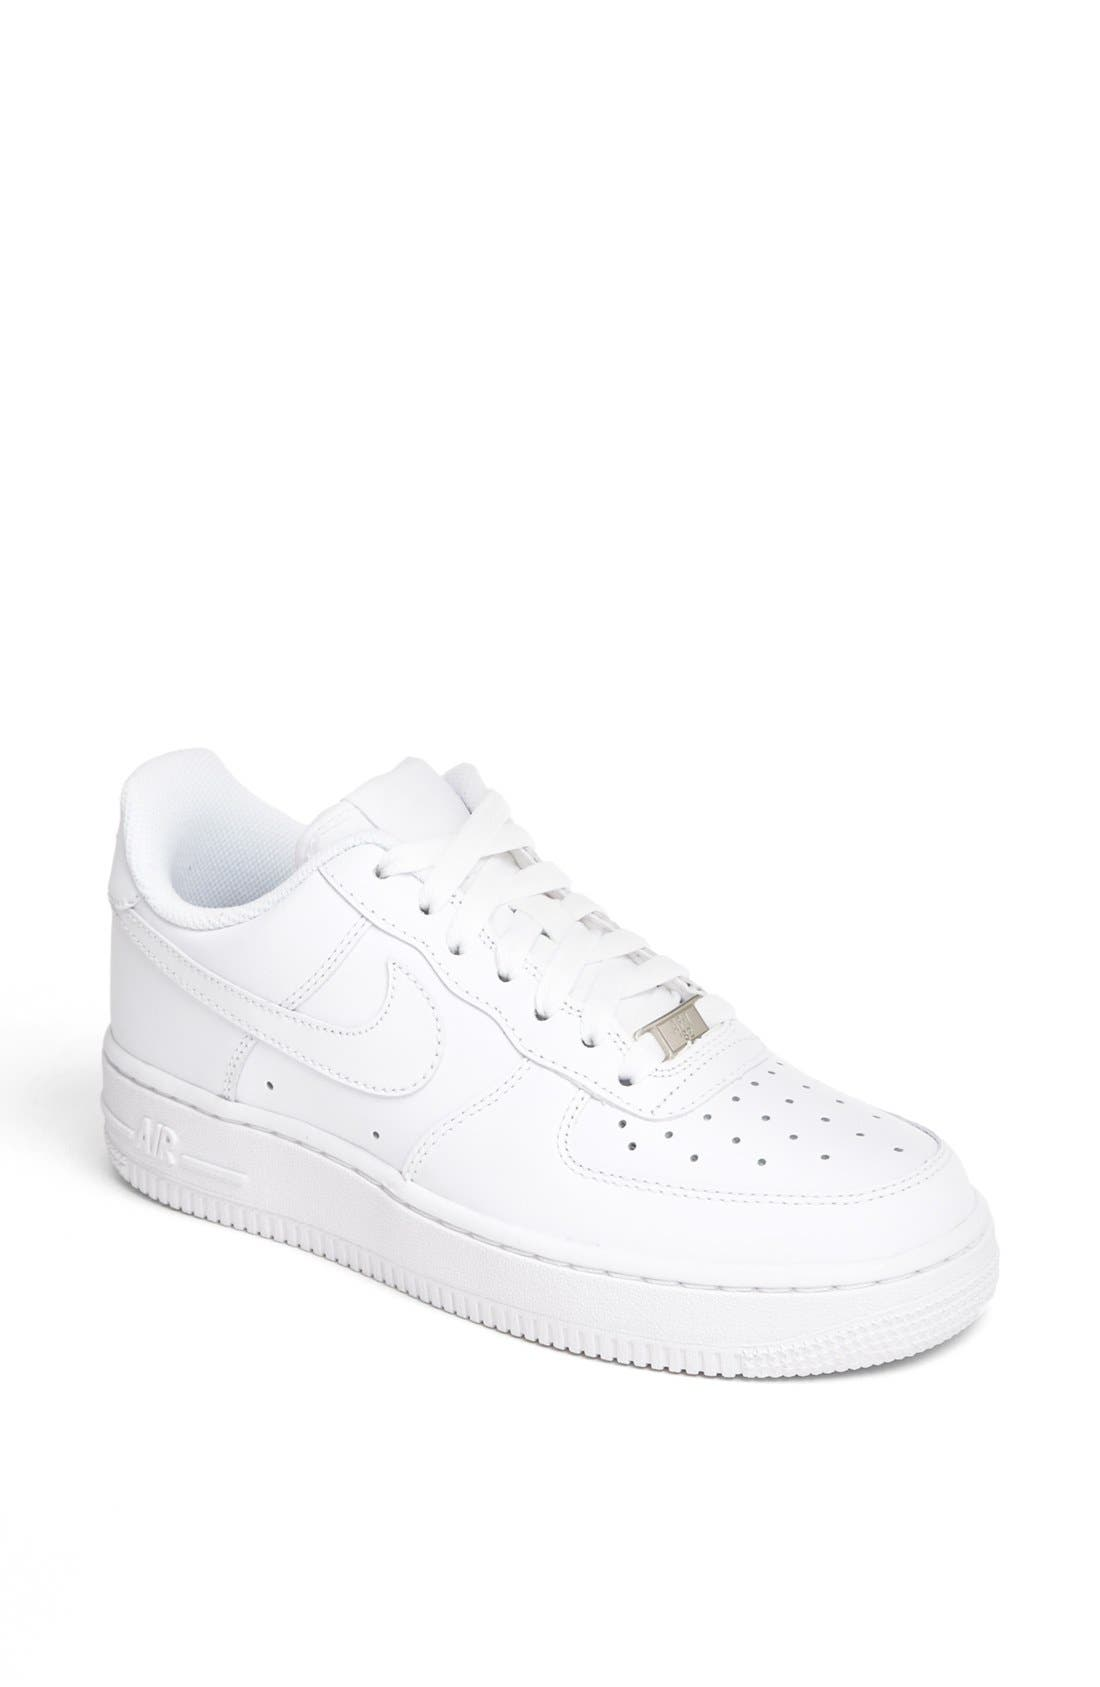 UPC 883412735315 Women's Air Force 1 Low Basketball Shoes